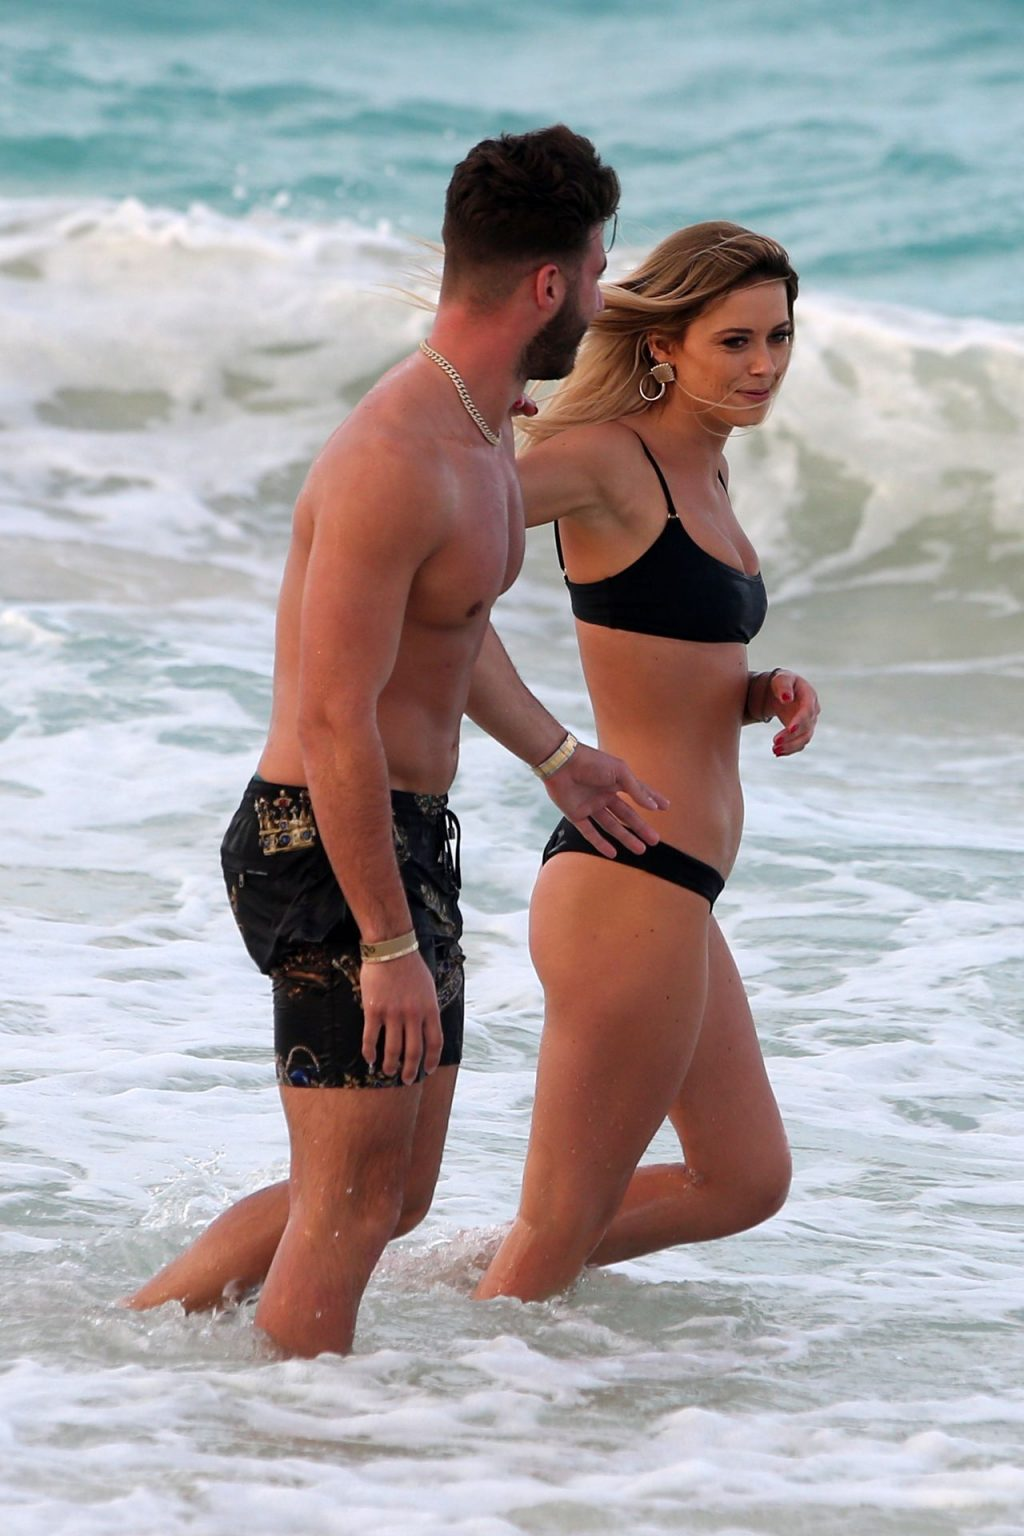 Olivia Bentley Sexy The Fappening Blog 11 1024x1536 - Olivia Bentley and Joshua Ritchie Enjoy Their Vacation in Punta Cuna (26 Photos)